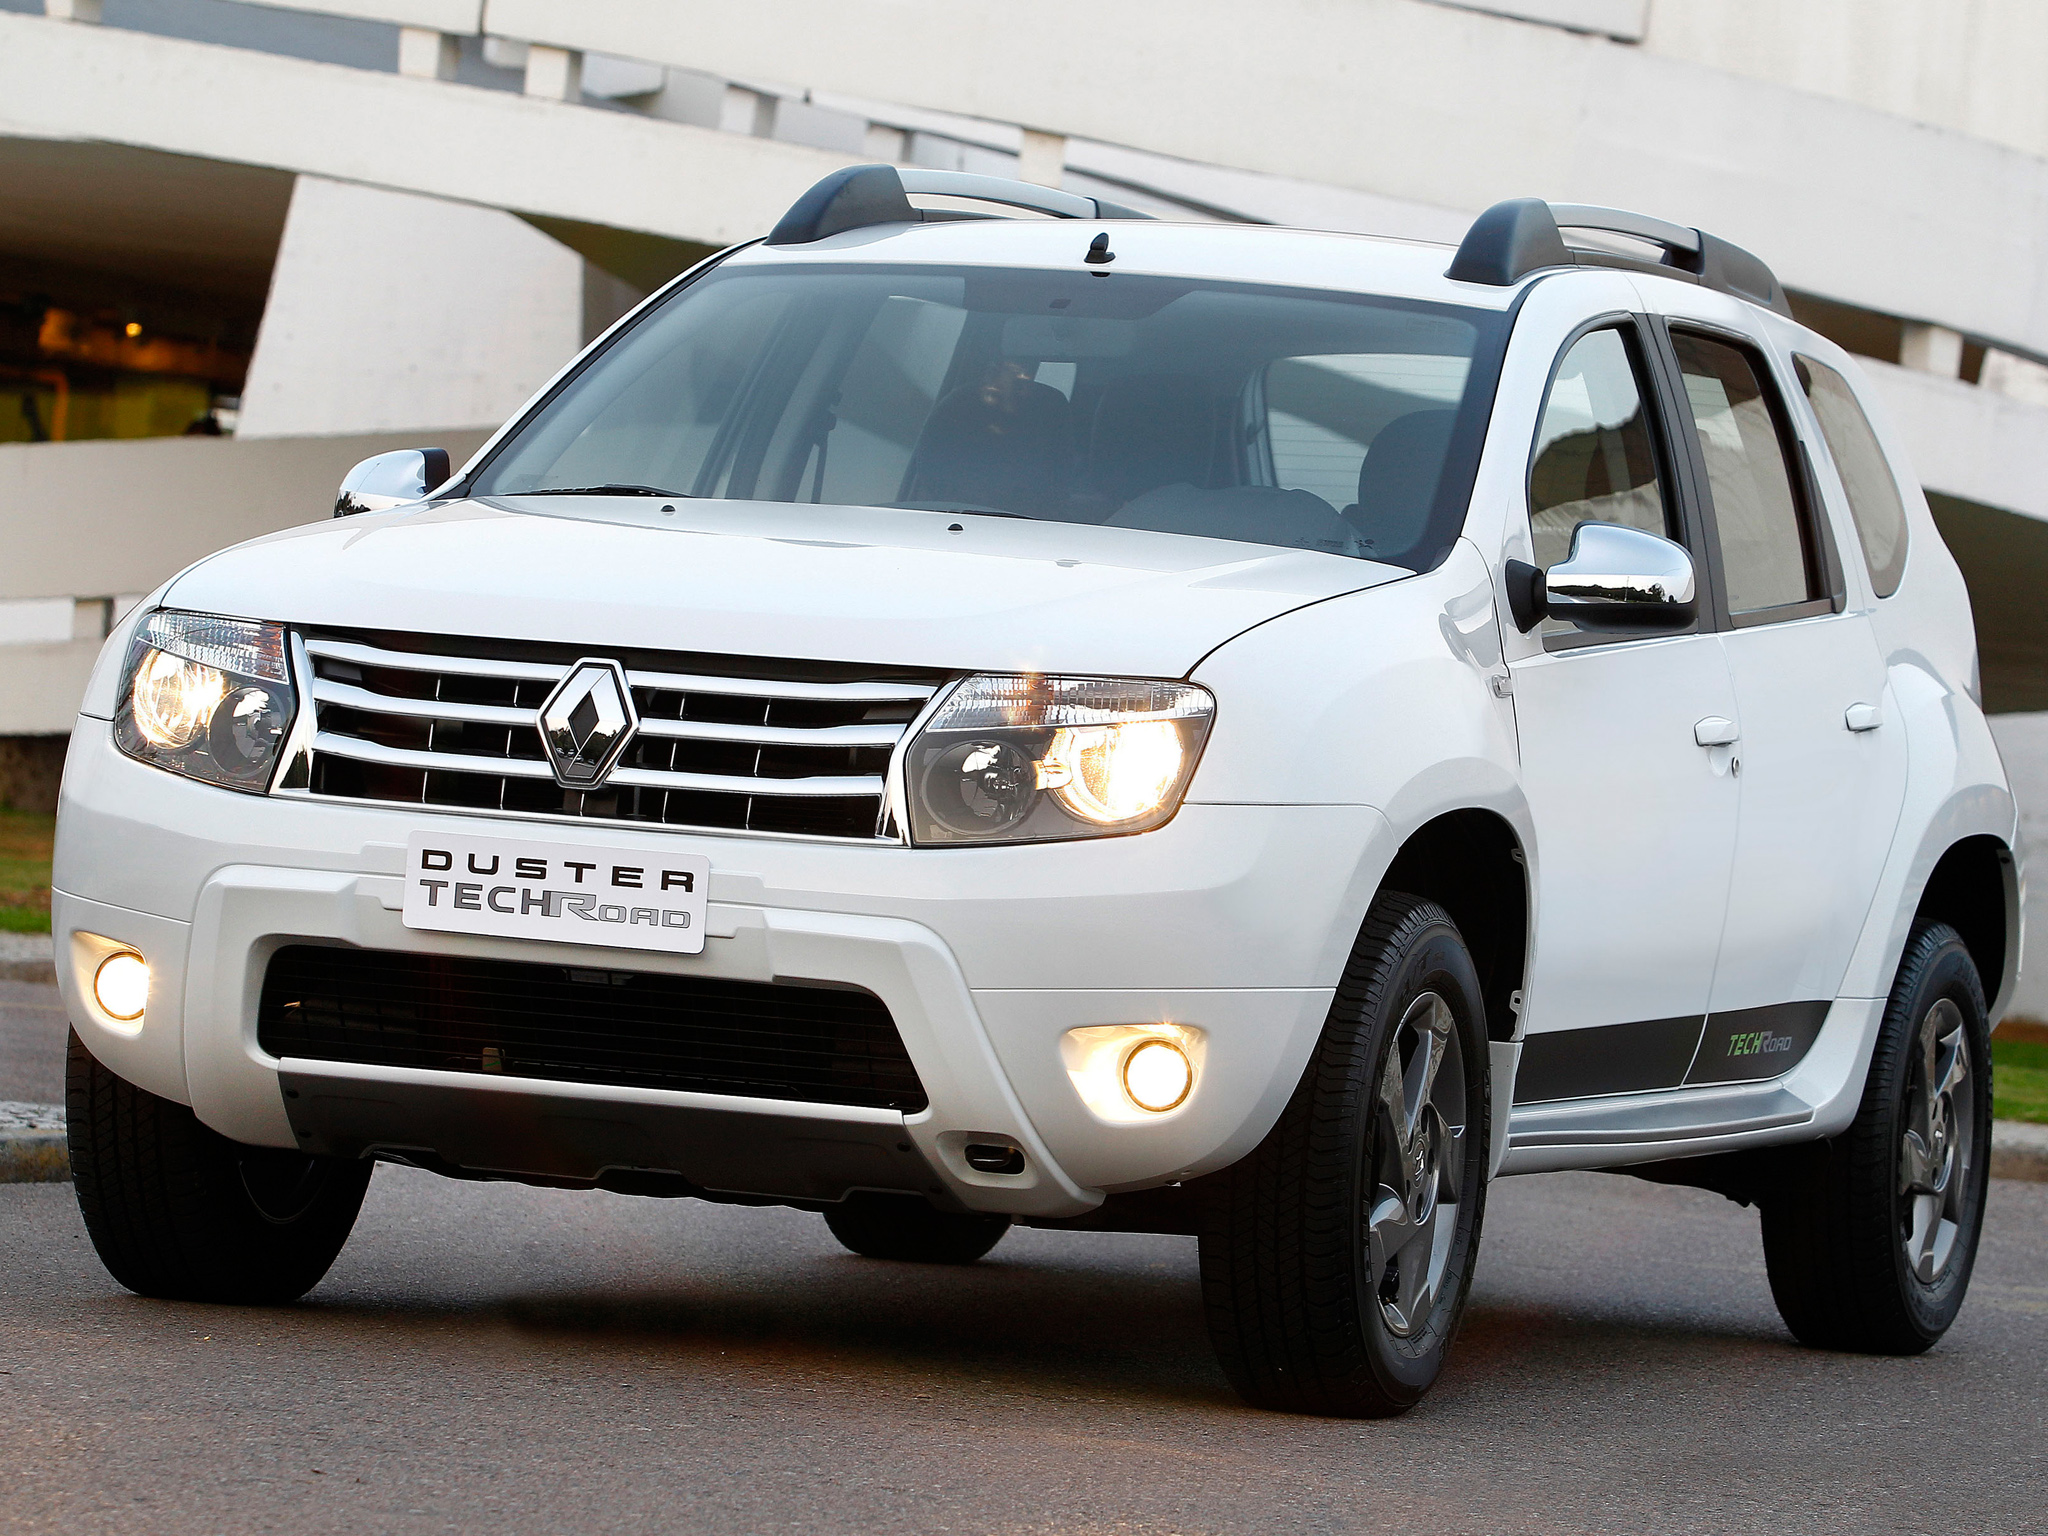 renault duster photos photogallery with 15 pics. Black Bedroom Furniture Sets. Home Design Ideas